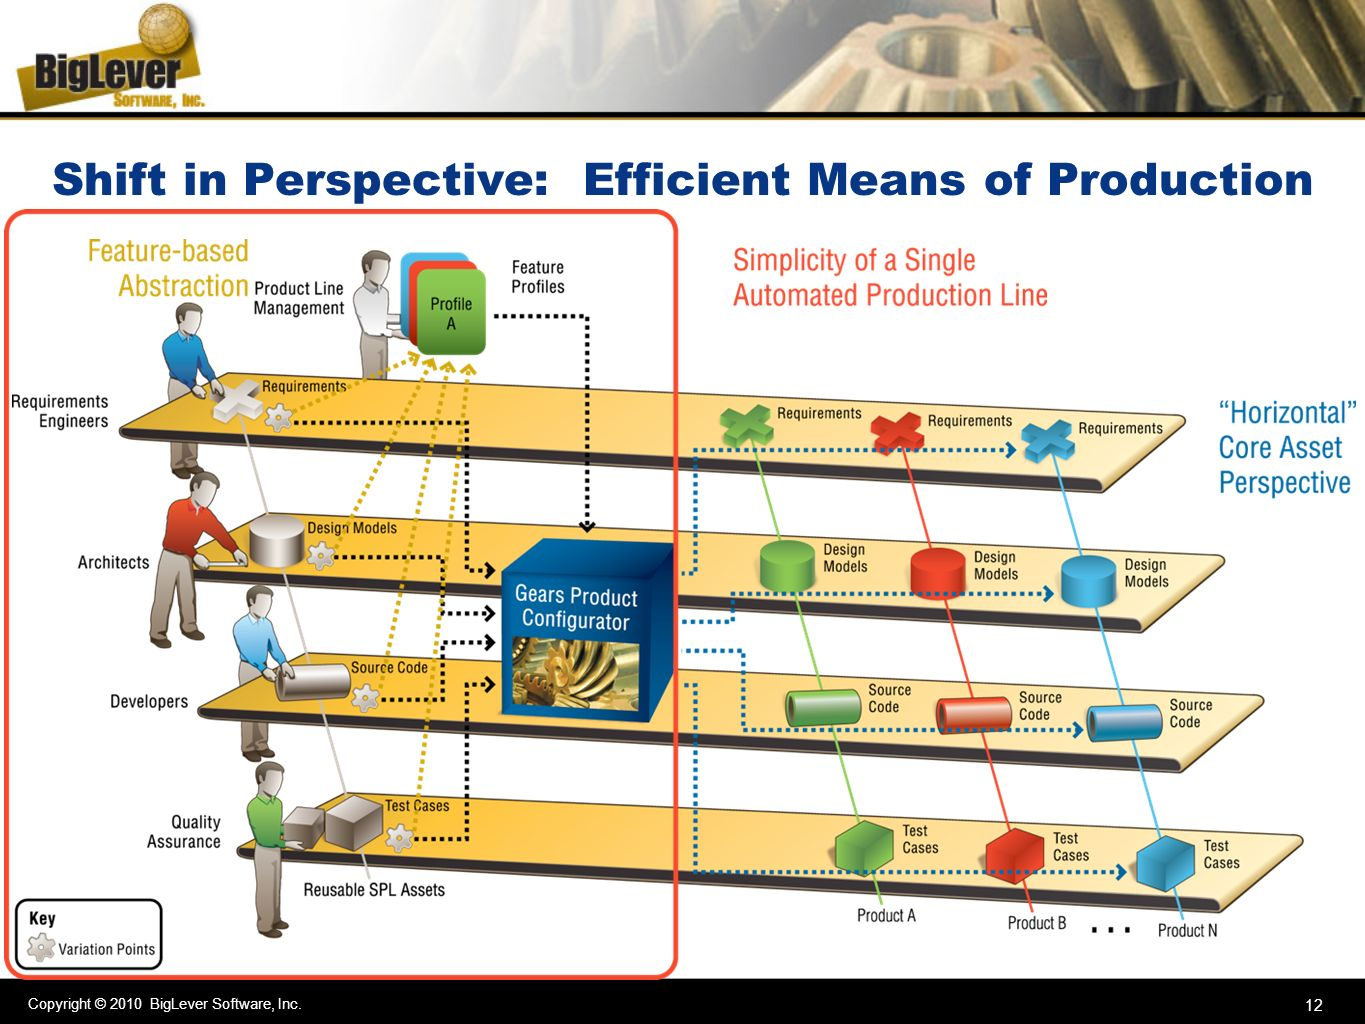 Shift in Perspective: Efficient Means of Production